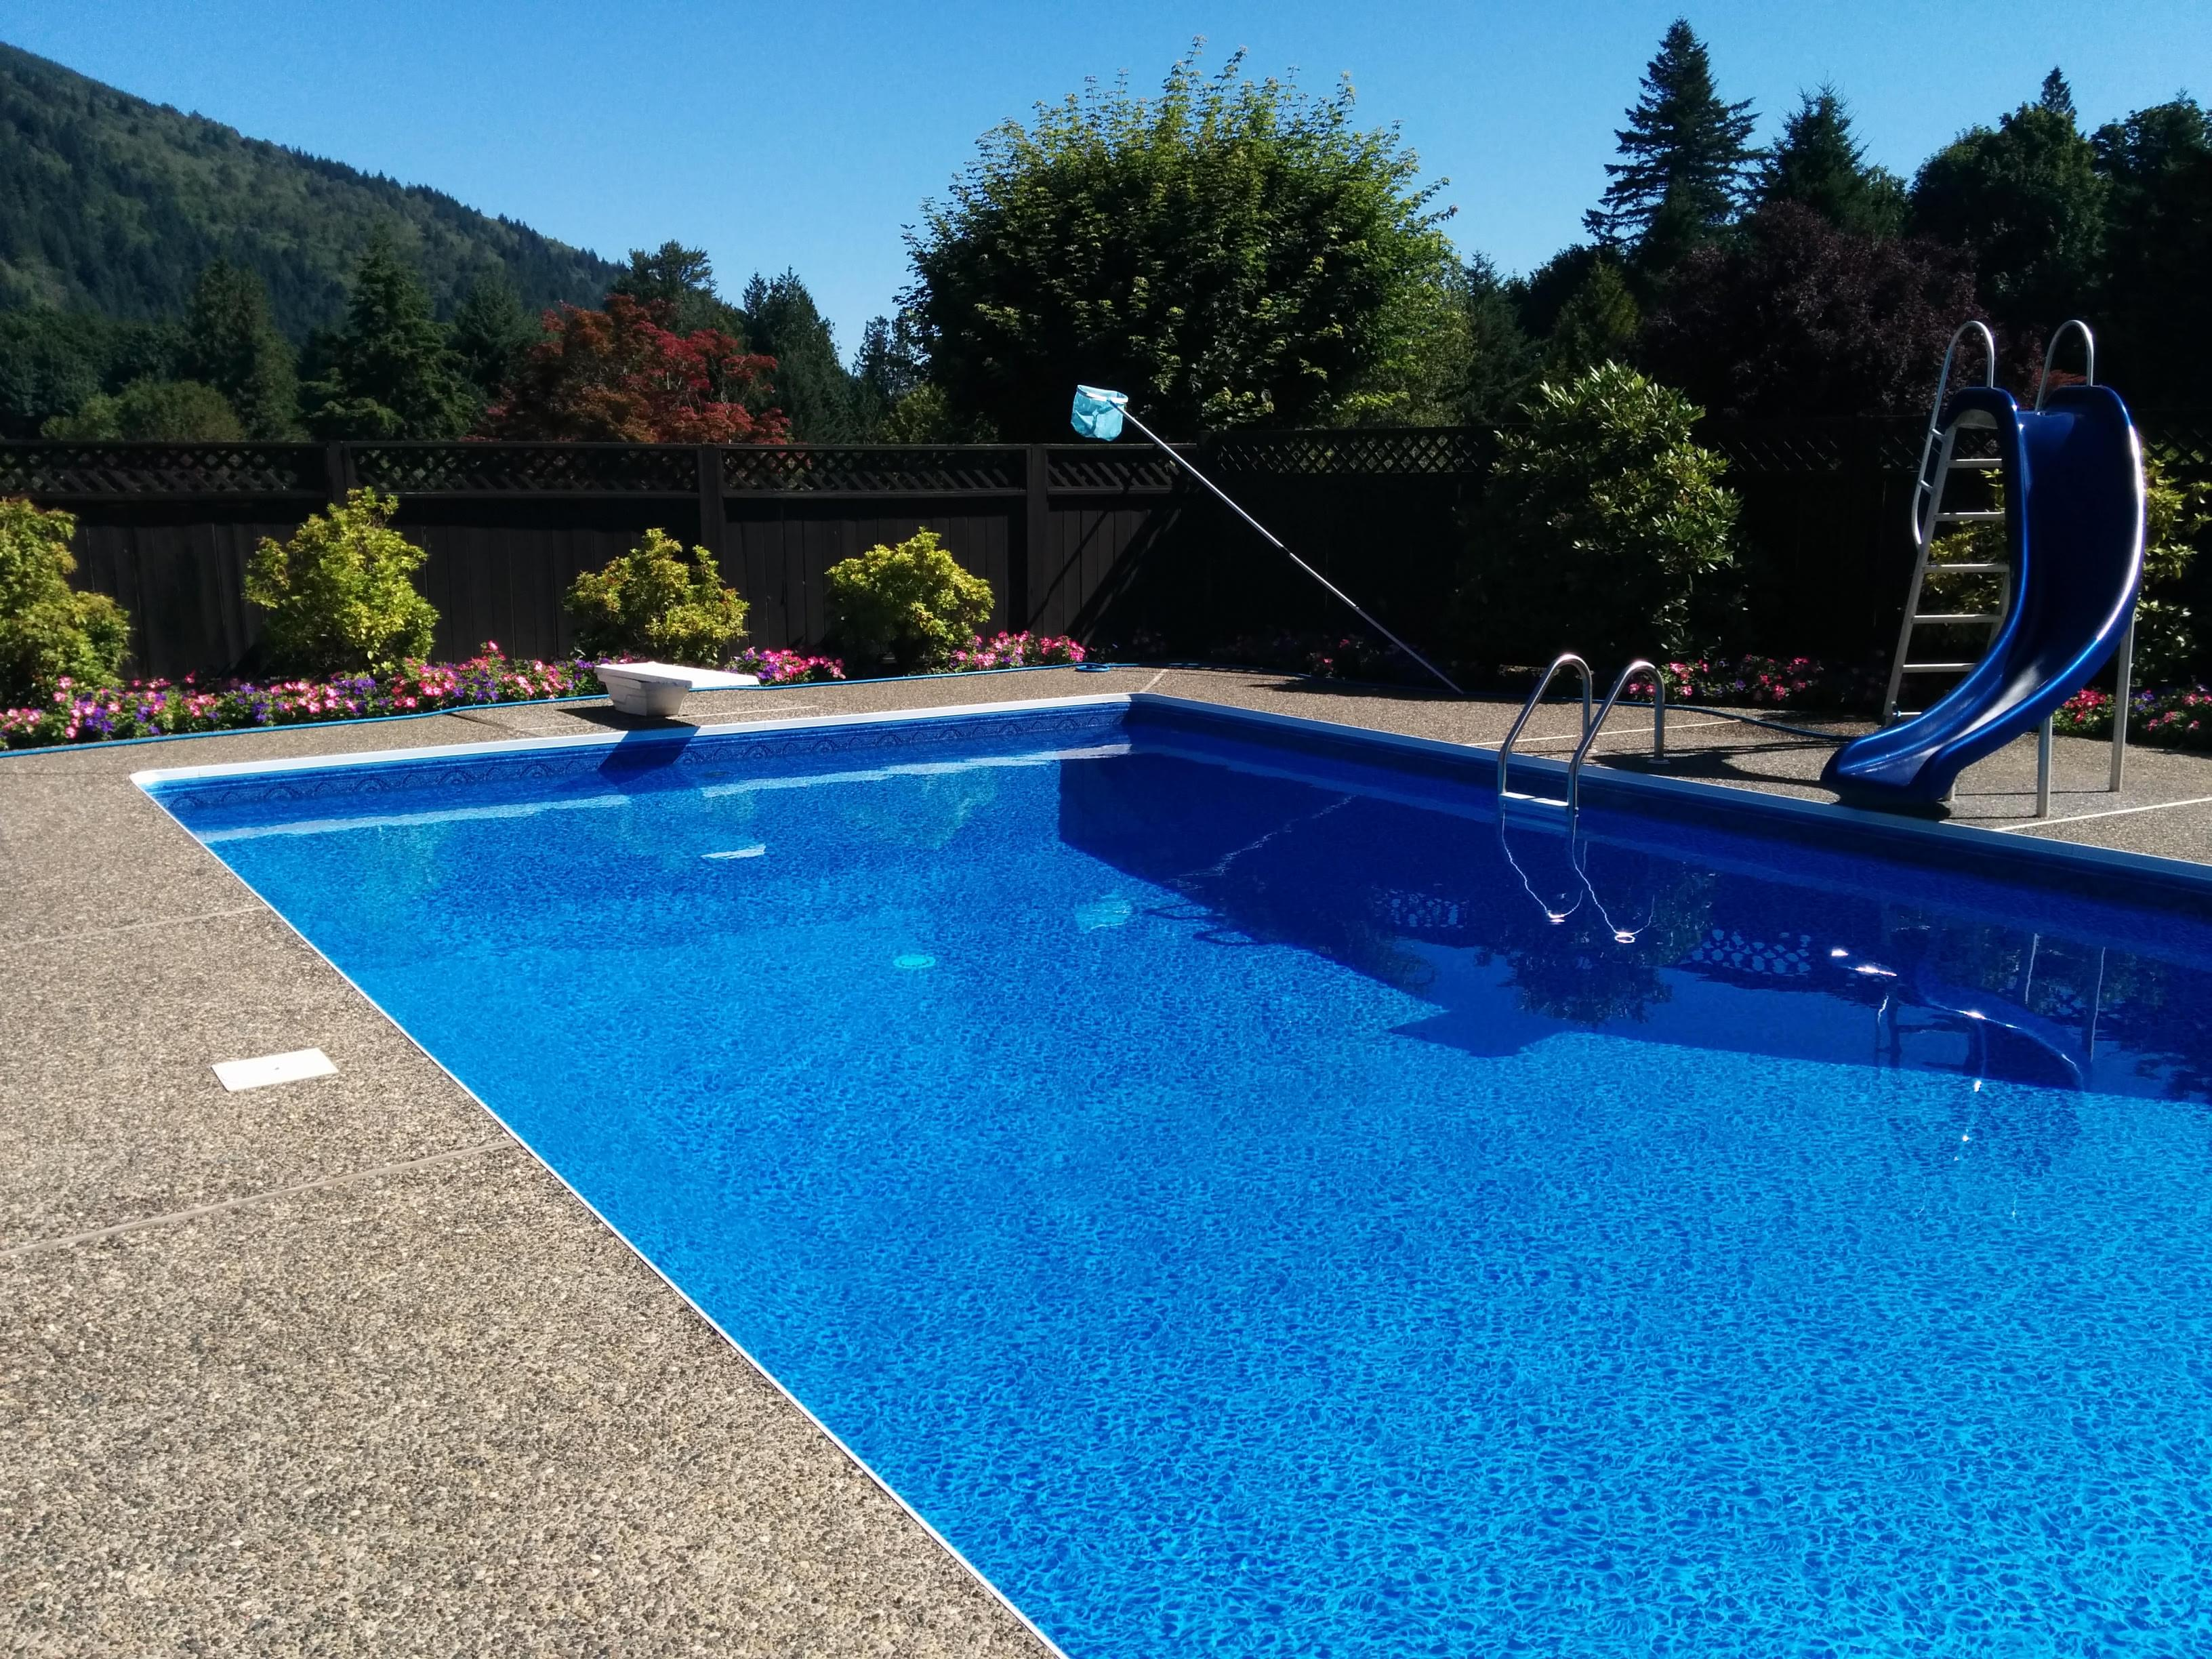 Inground pools pool supplies canada for Pictures of inground pools